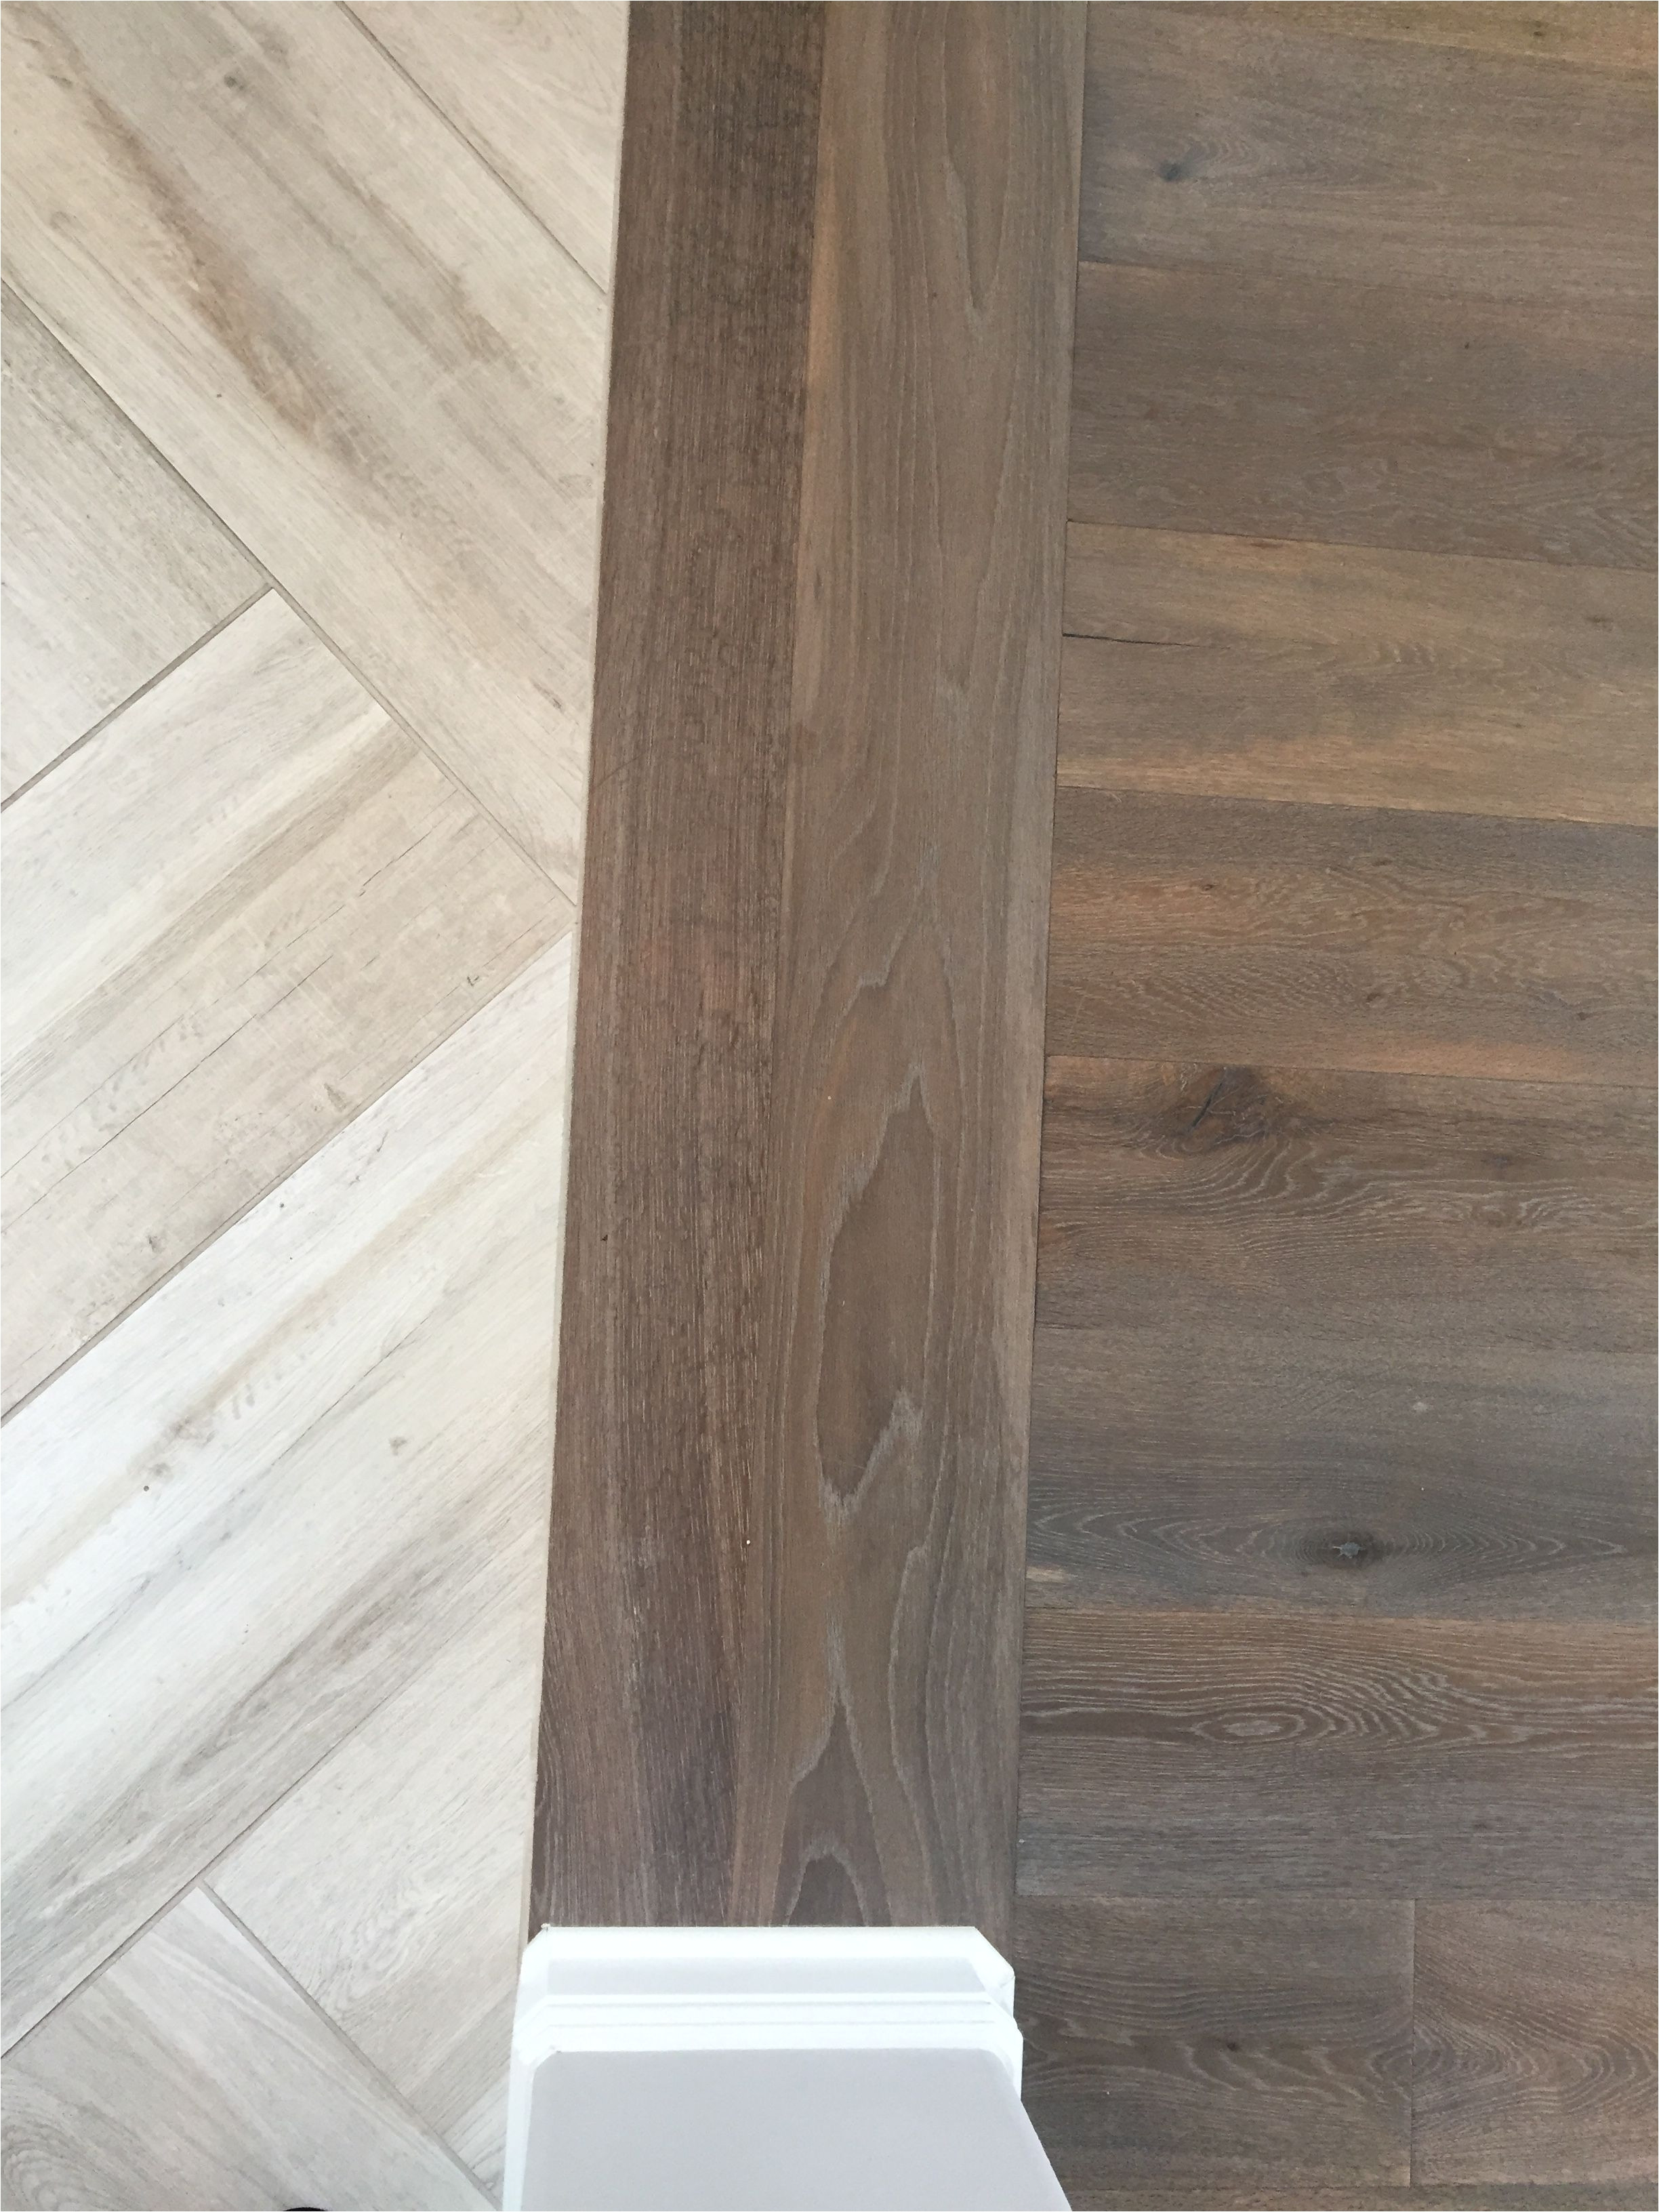 Laminate Wood Flooring Vs Hardwood Cost Of White Washed Engineered Wood Flooring Floor Transition Laminate to Inside White Washed Engineered Wood Flooring Floor Transition Laminate to Herringbone Tile Pattern Model